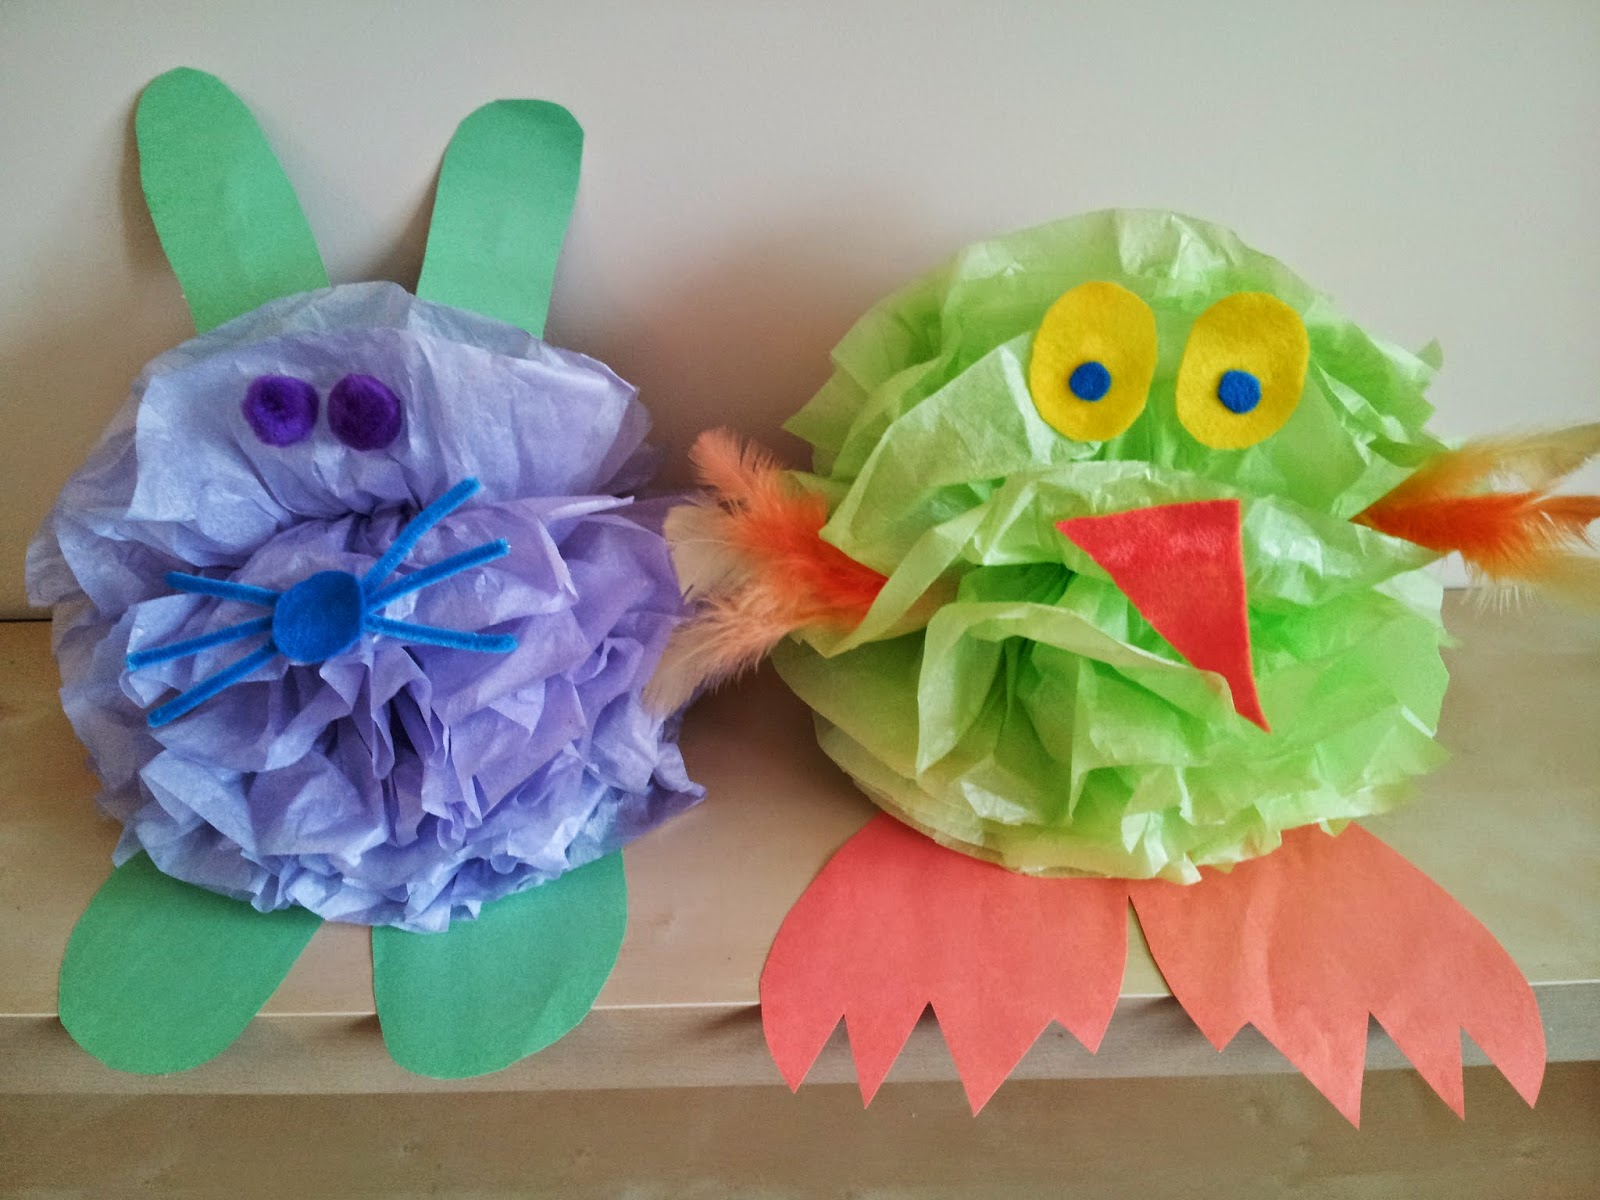 Easter chick craft, Easter bunny craft, tissue paper crafts, kids crafts